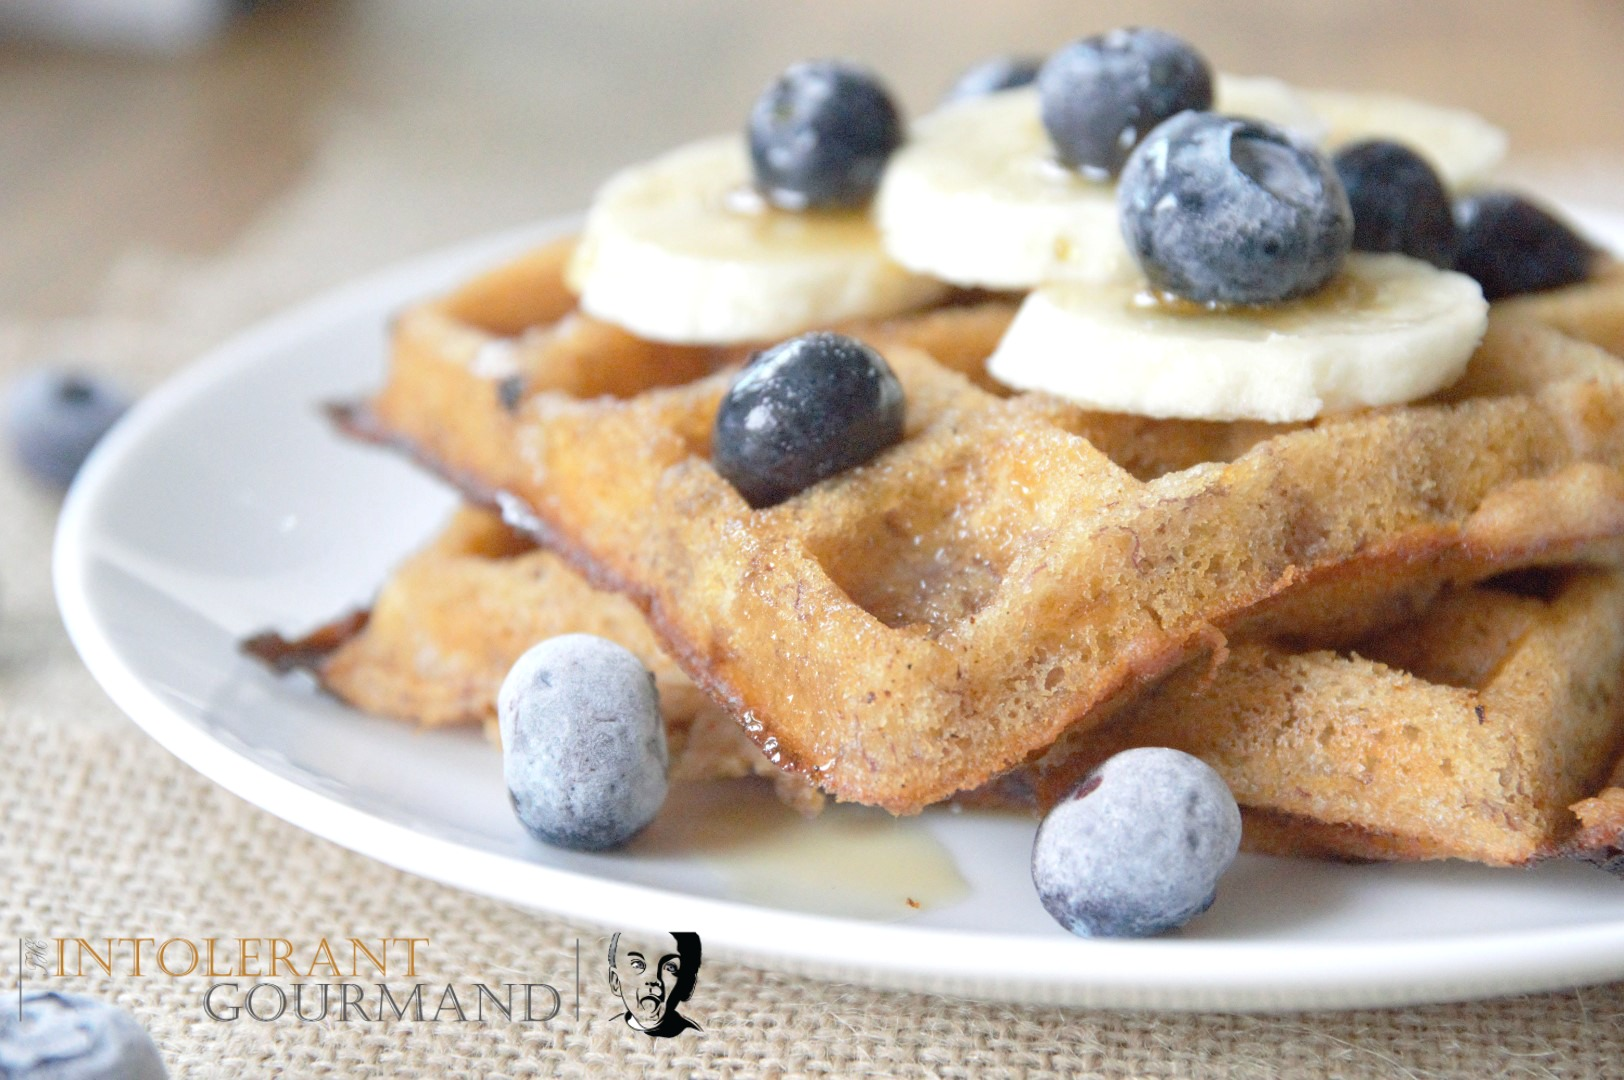 Oaty Waffles - a delicious alternative for breakfast that also happens to be gluten-free! It's simple and quick to make too, making it the perfect breakfast option! www.intolerantgourmand.com